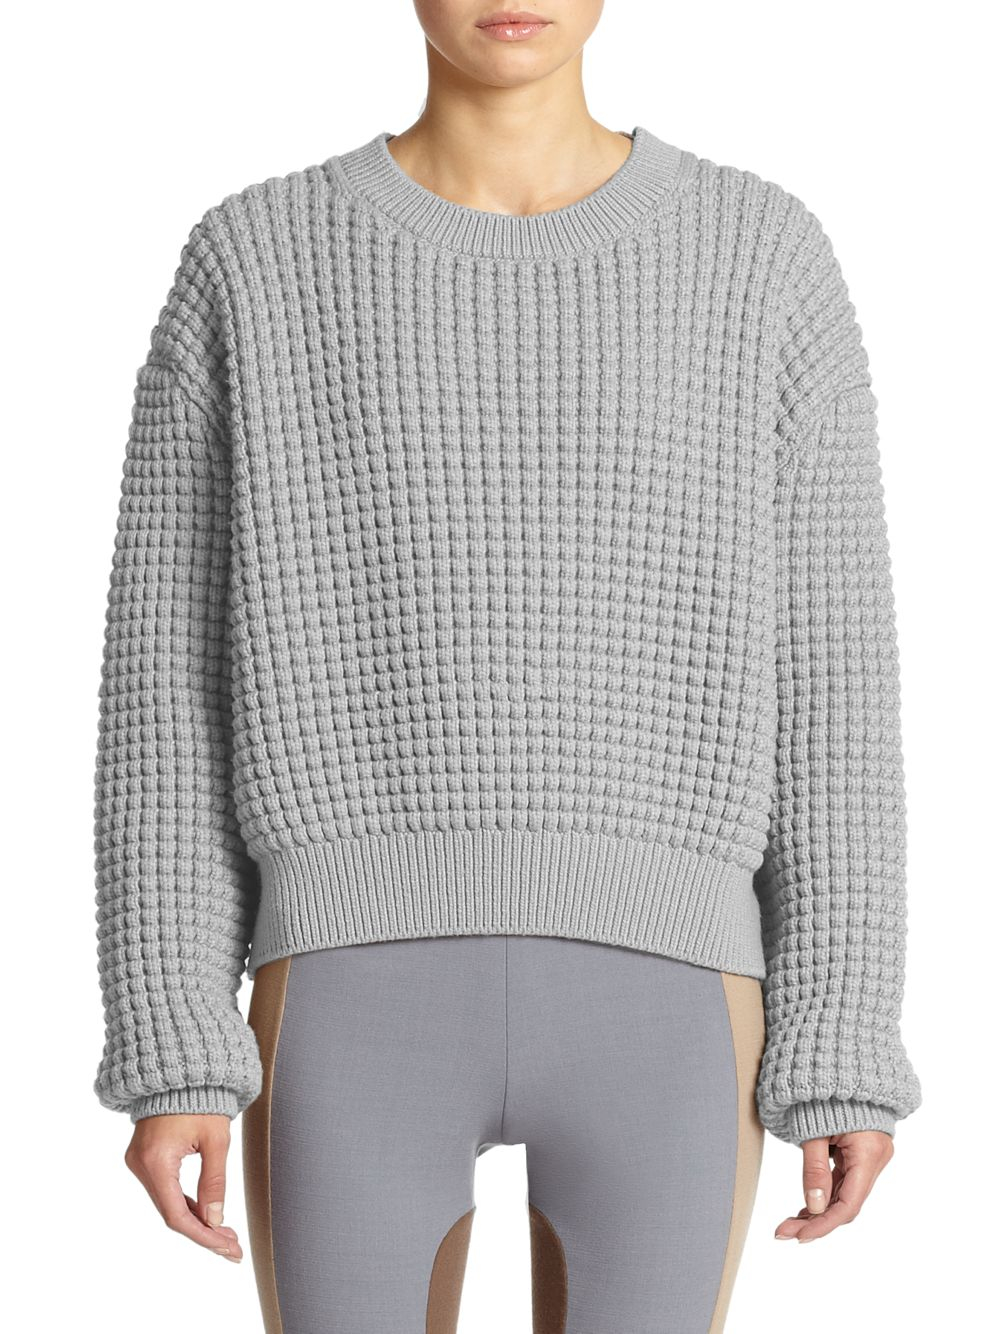 182eafb903c Gallery. Previously sold at  Saks OFF 5TH · Women s Shawl Sweater ...